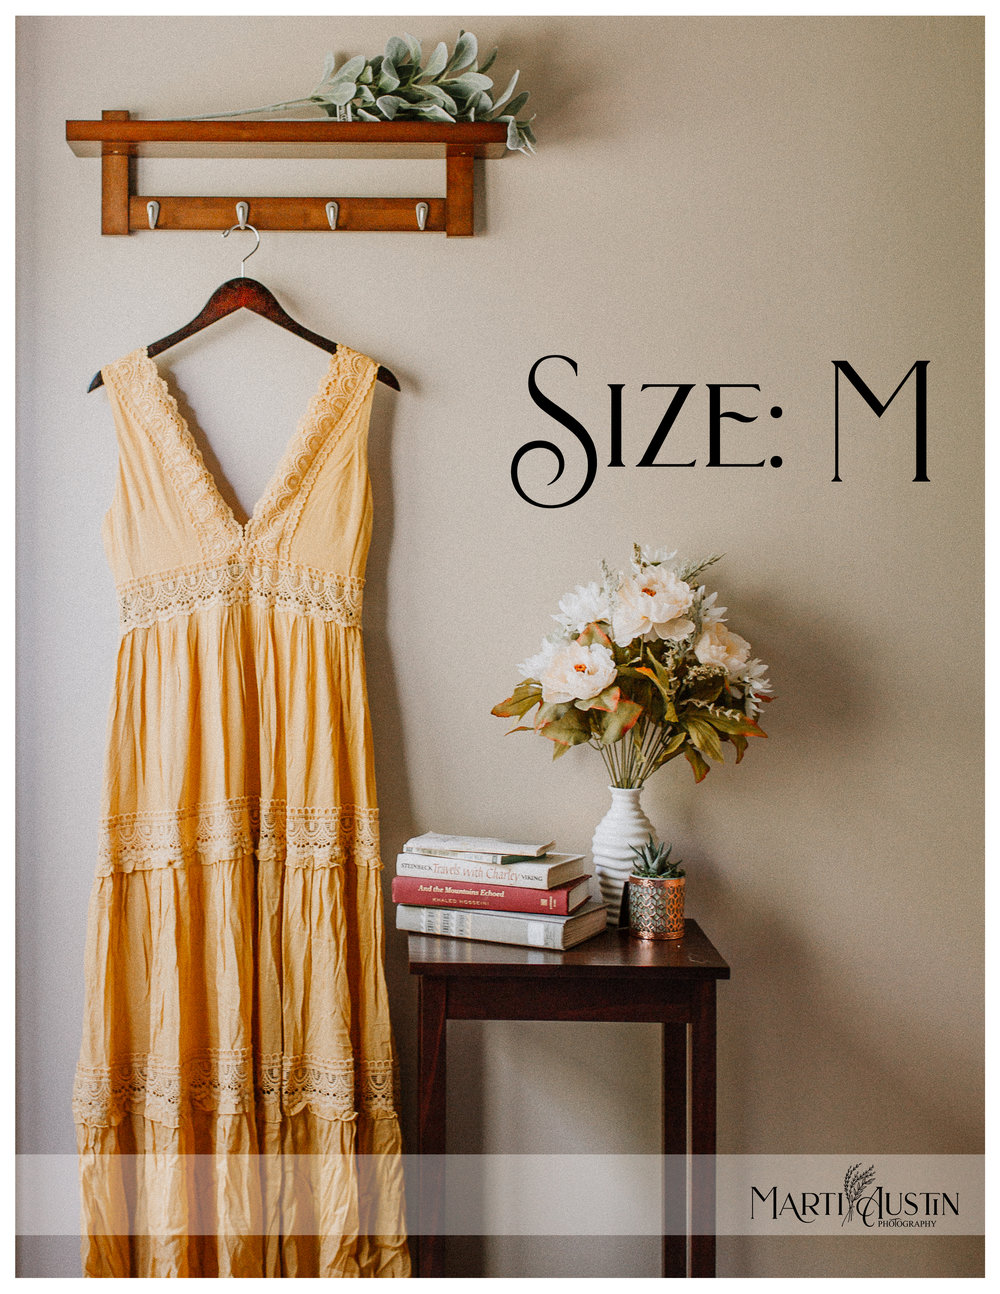 long yellow dress hanging on the wall next to a table with books and flowers